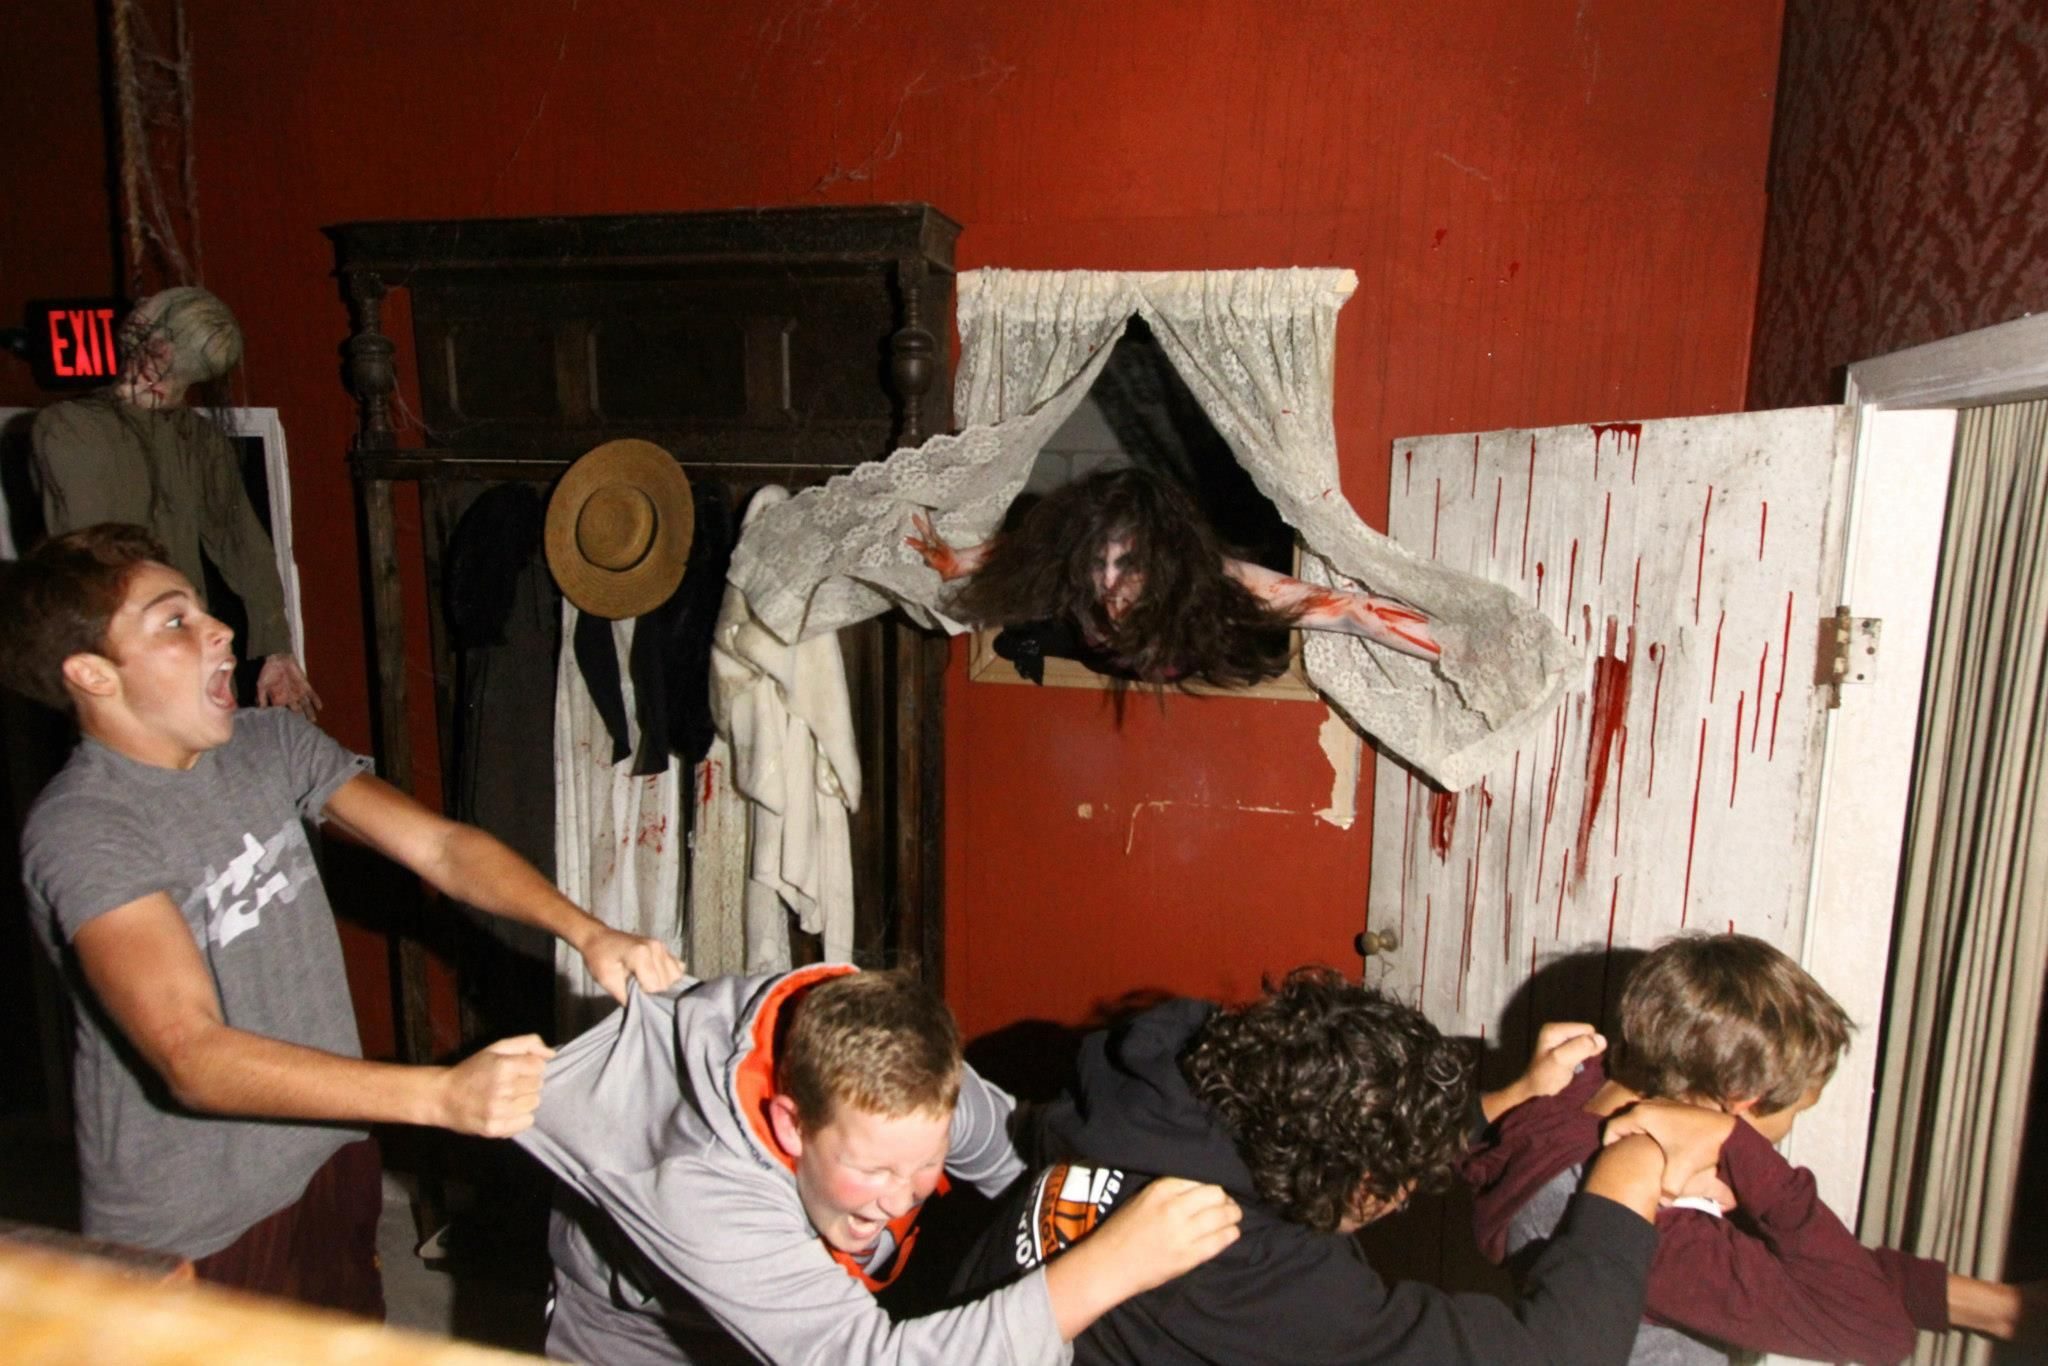 indoor haunted house maze ideas | Overall Rating of Reign of Terror 2012:  4.5 Skulls